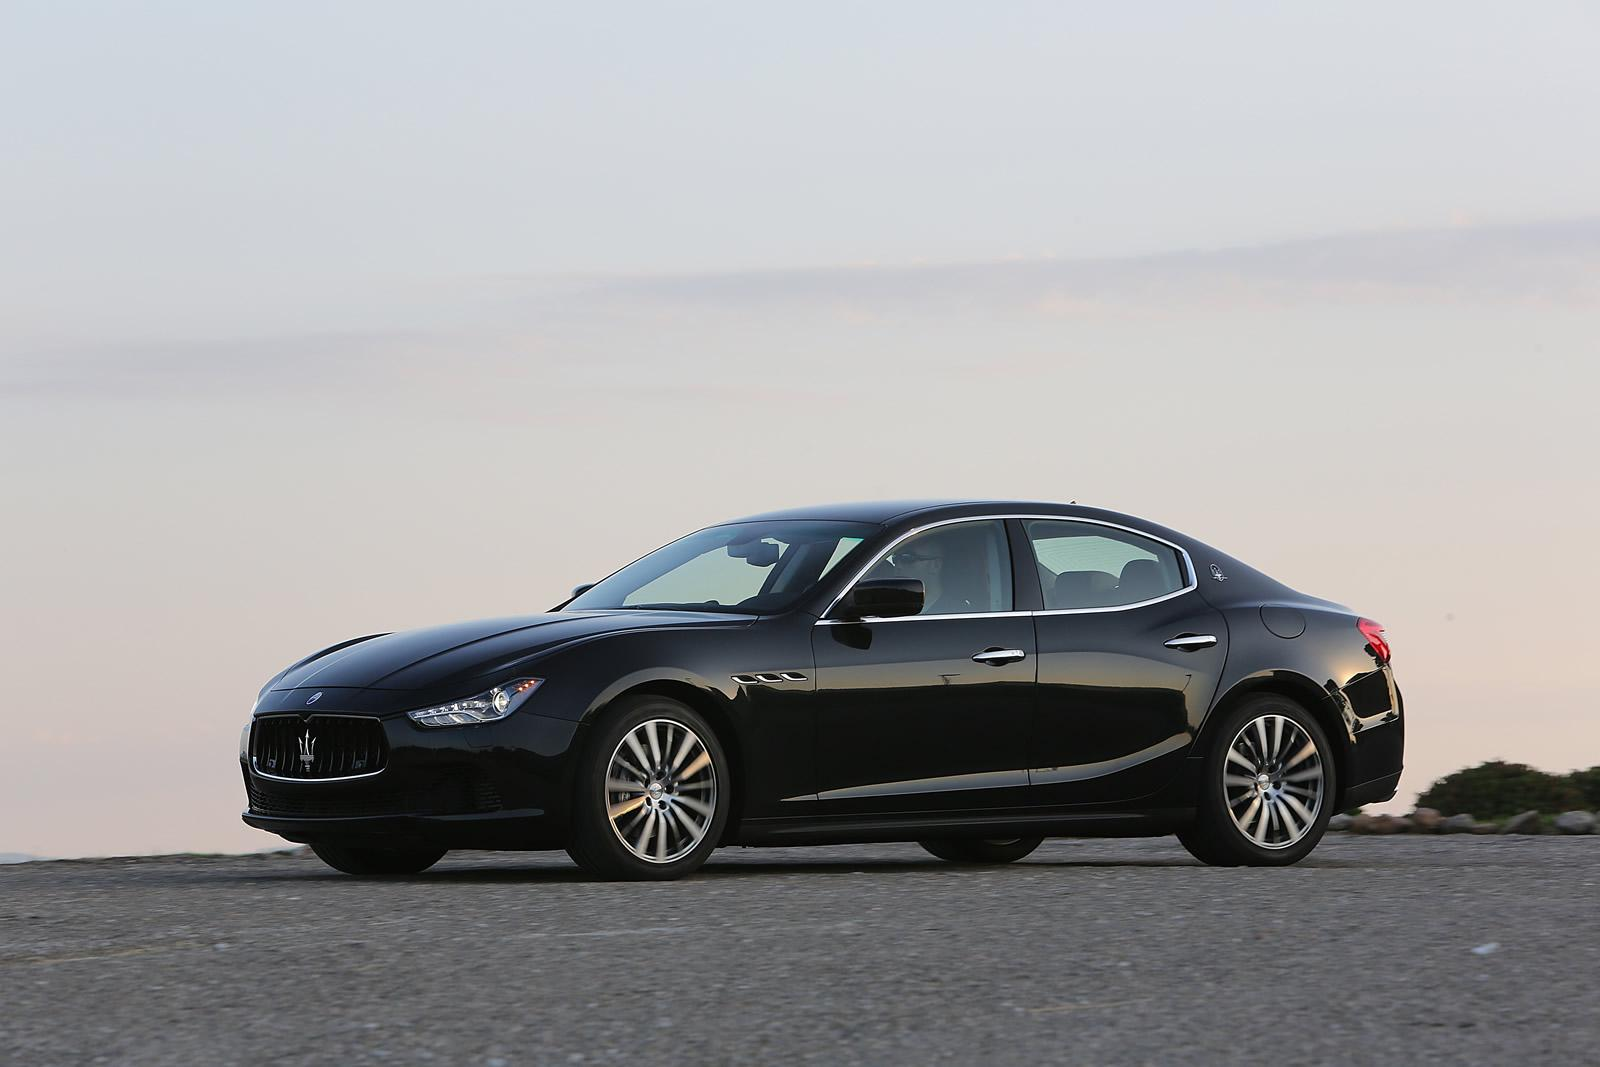 Maserati Ghibli Maserati Ghibli Specs And Photos 2013 2014 2015 2016